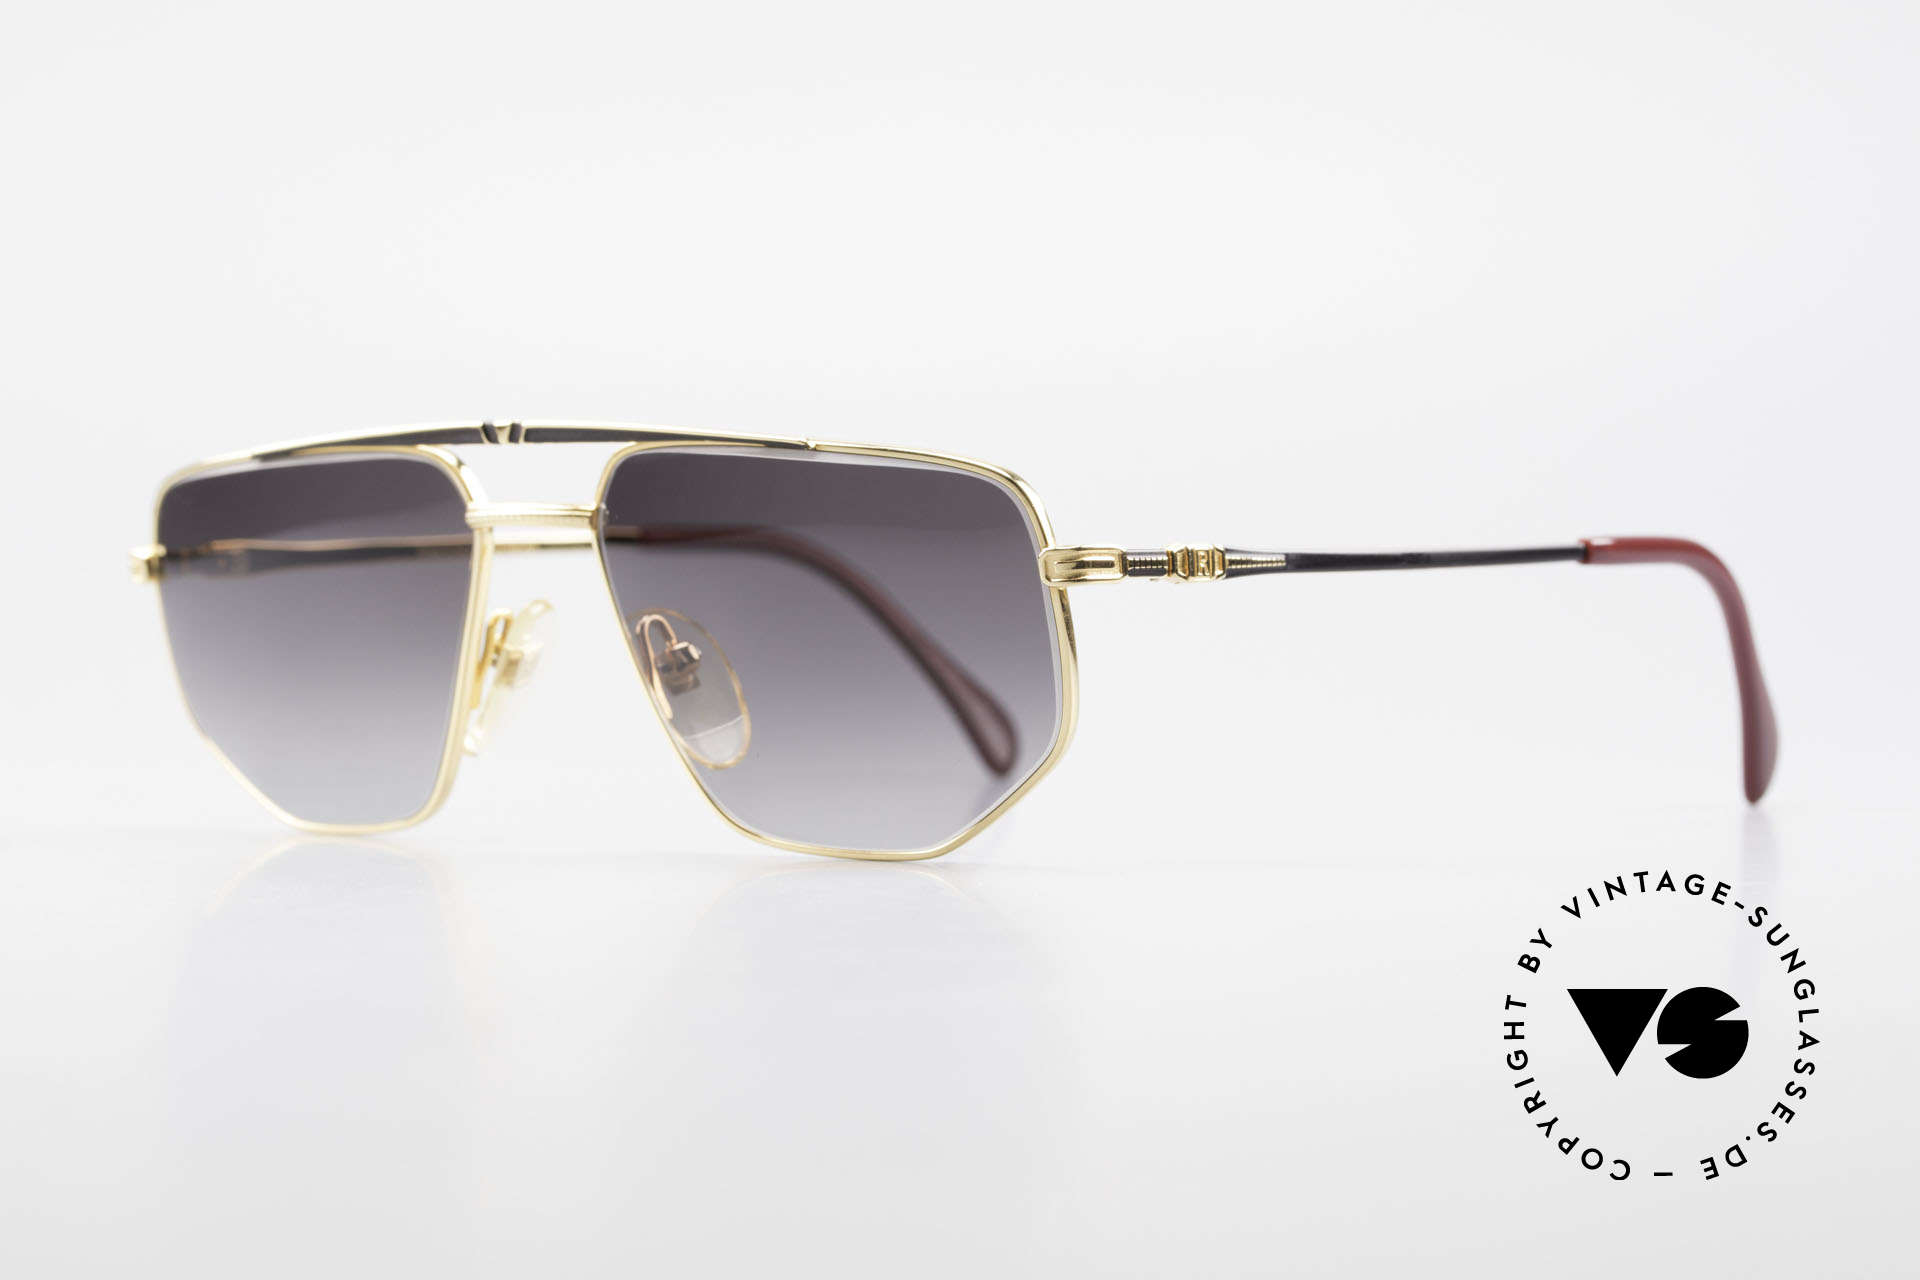 Roman Rothschild R1037 Gold Plated Shades Luxury, high-end quality (You must feel this!); made in Japan, Made for Men and Women